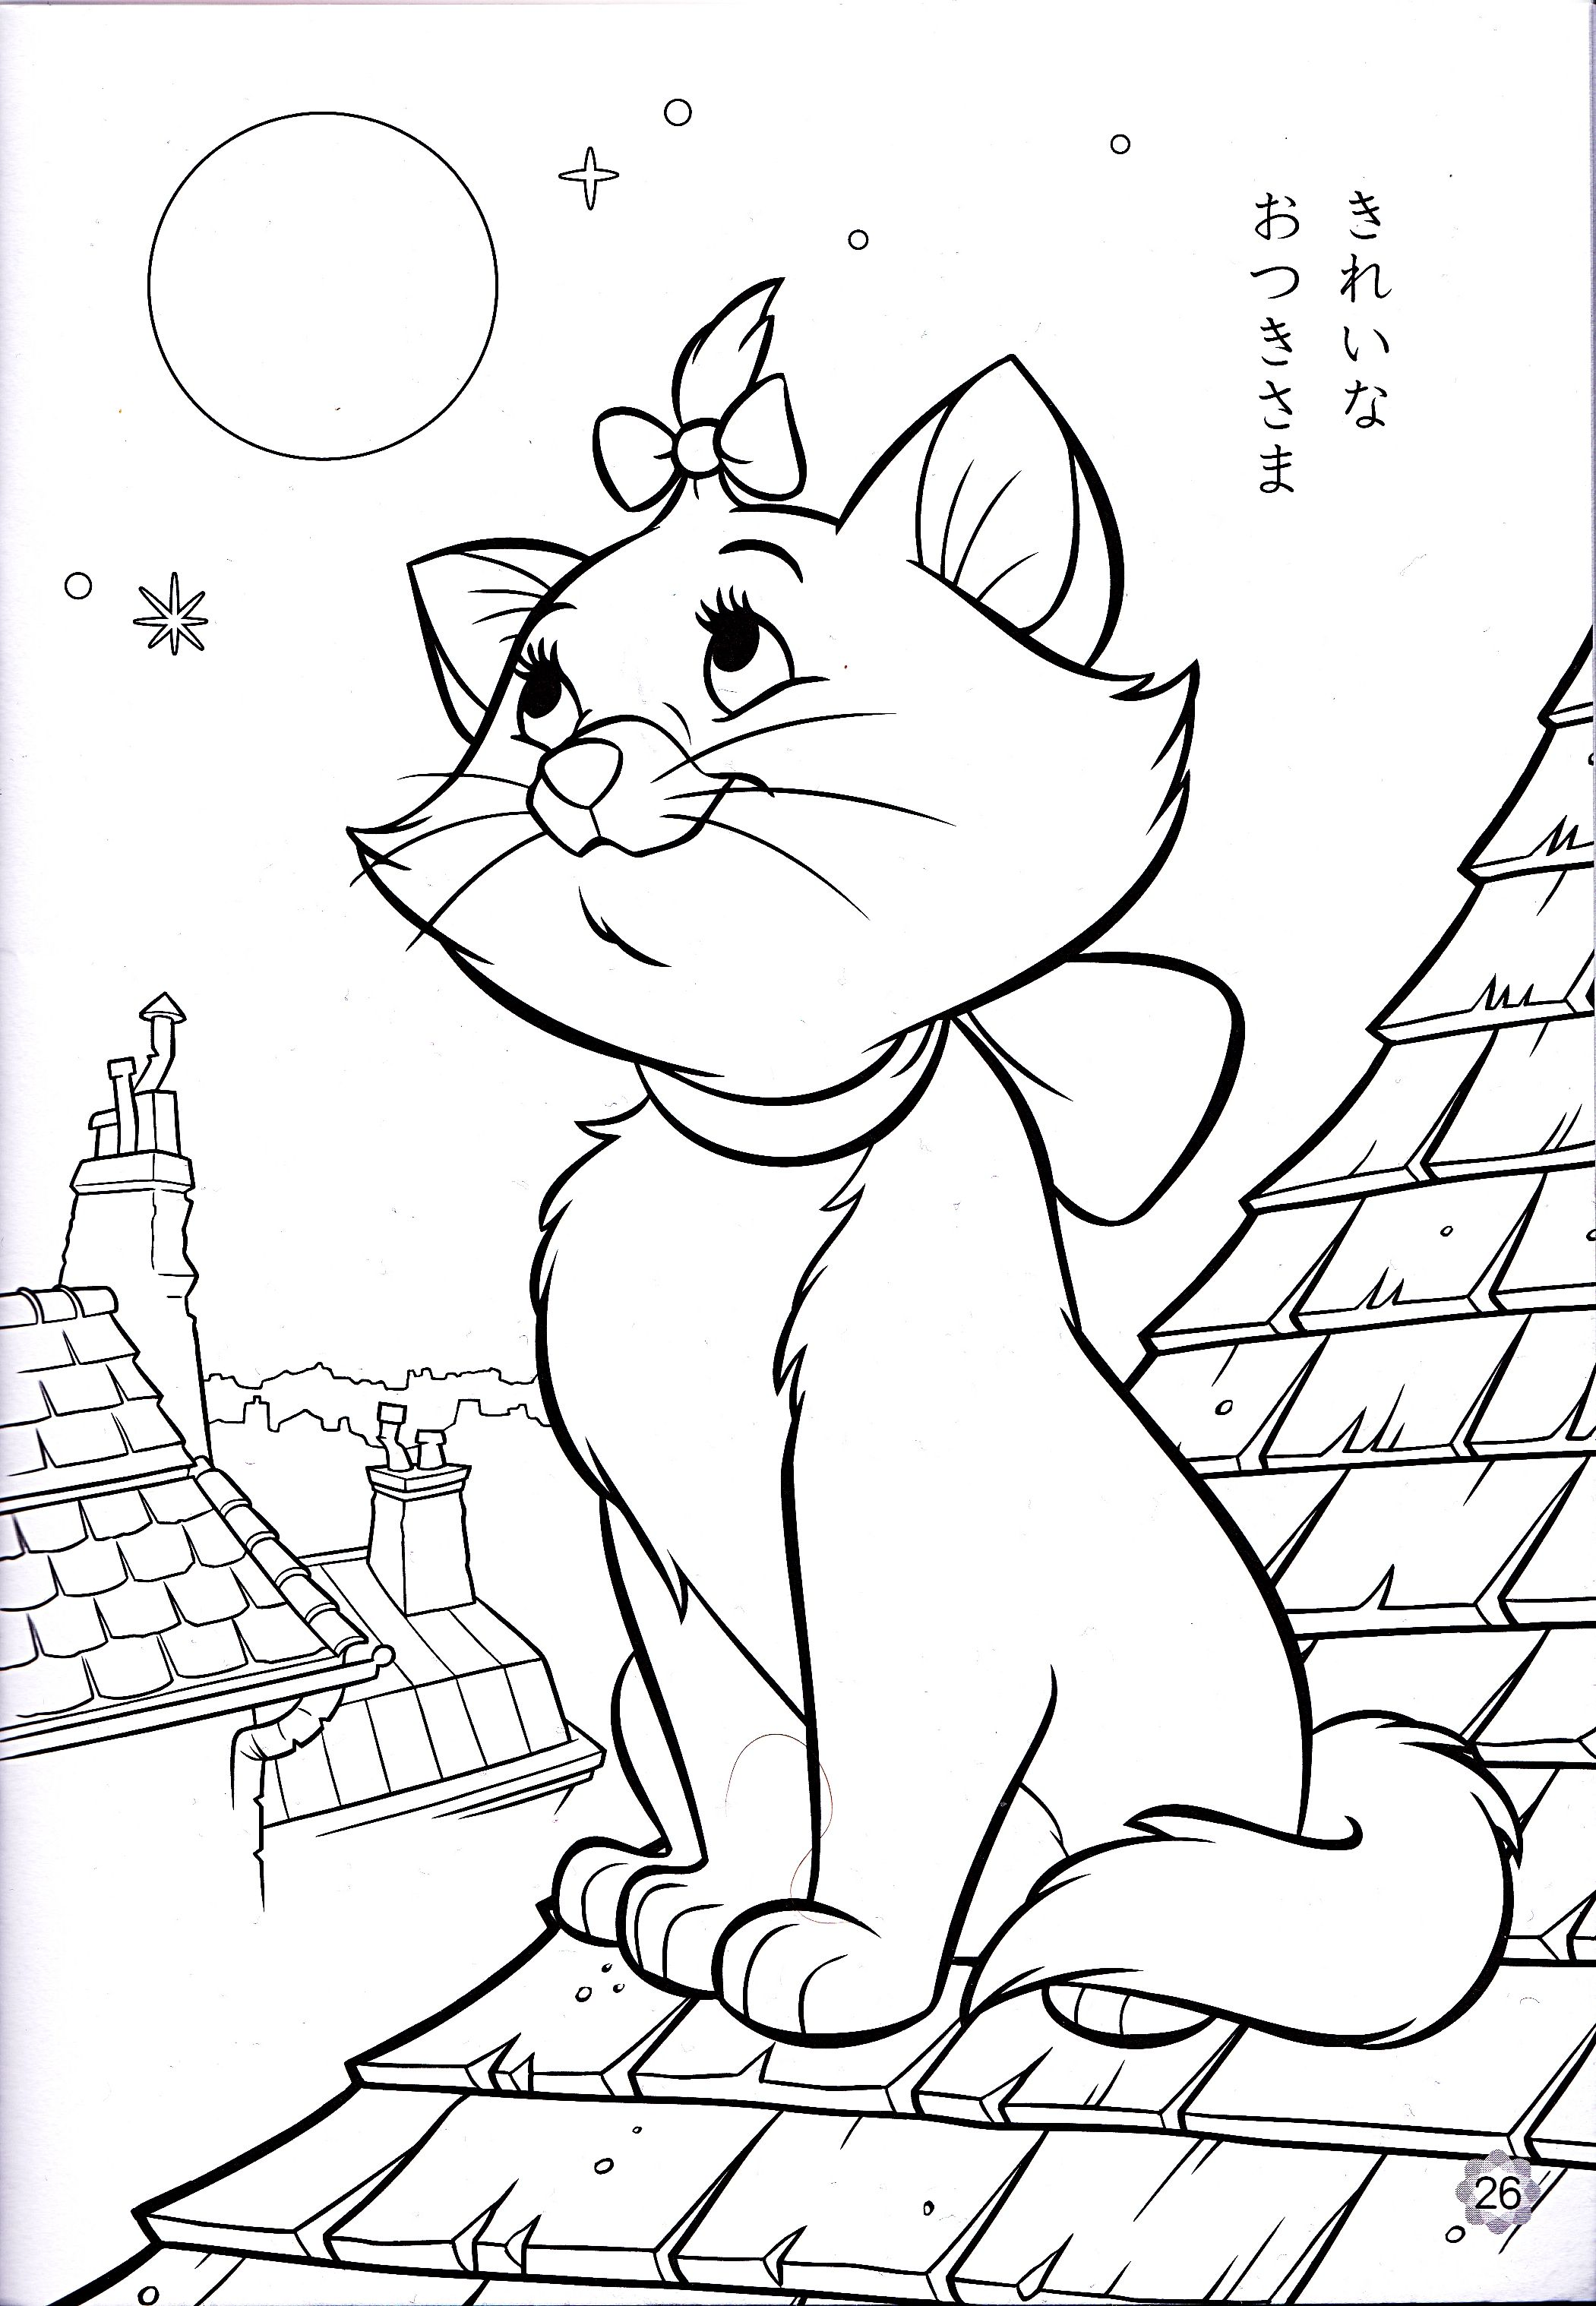 Coloring pictures disney characters - Walt Disney Coloring Pages Marie Walt Disney Characters Photo